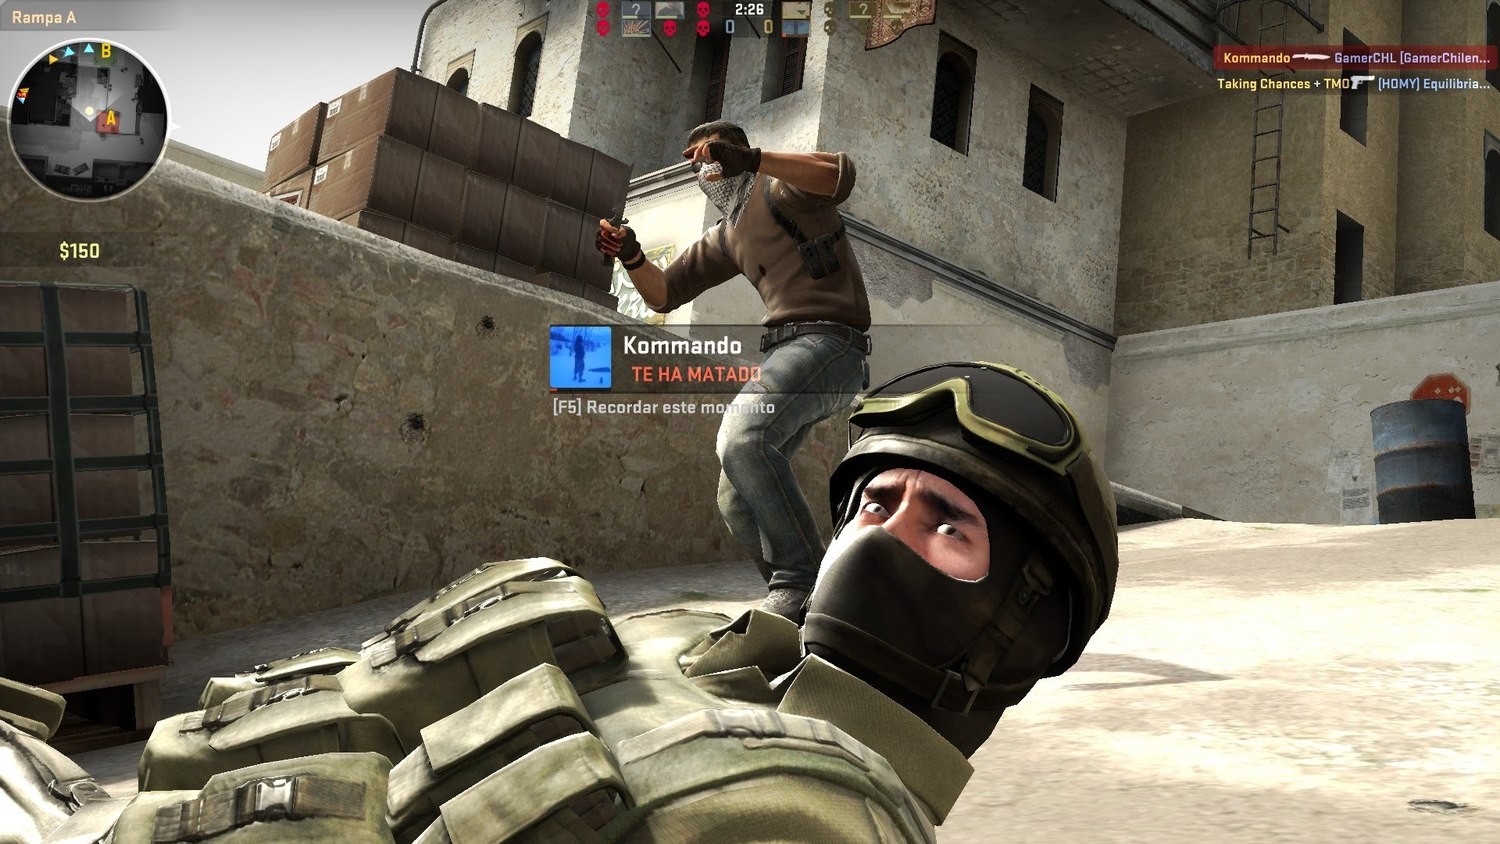 danish cs go player prosecuted for scamming players out of skins